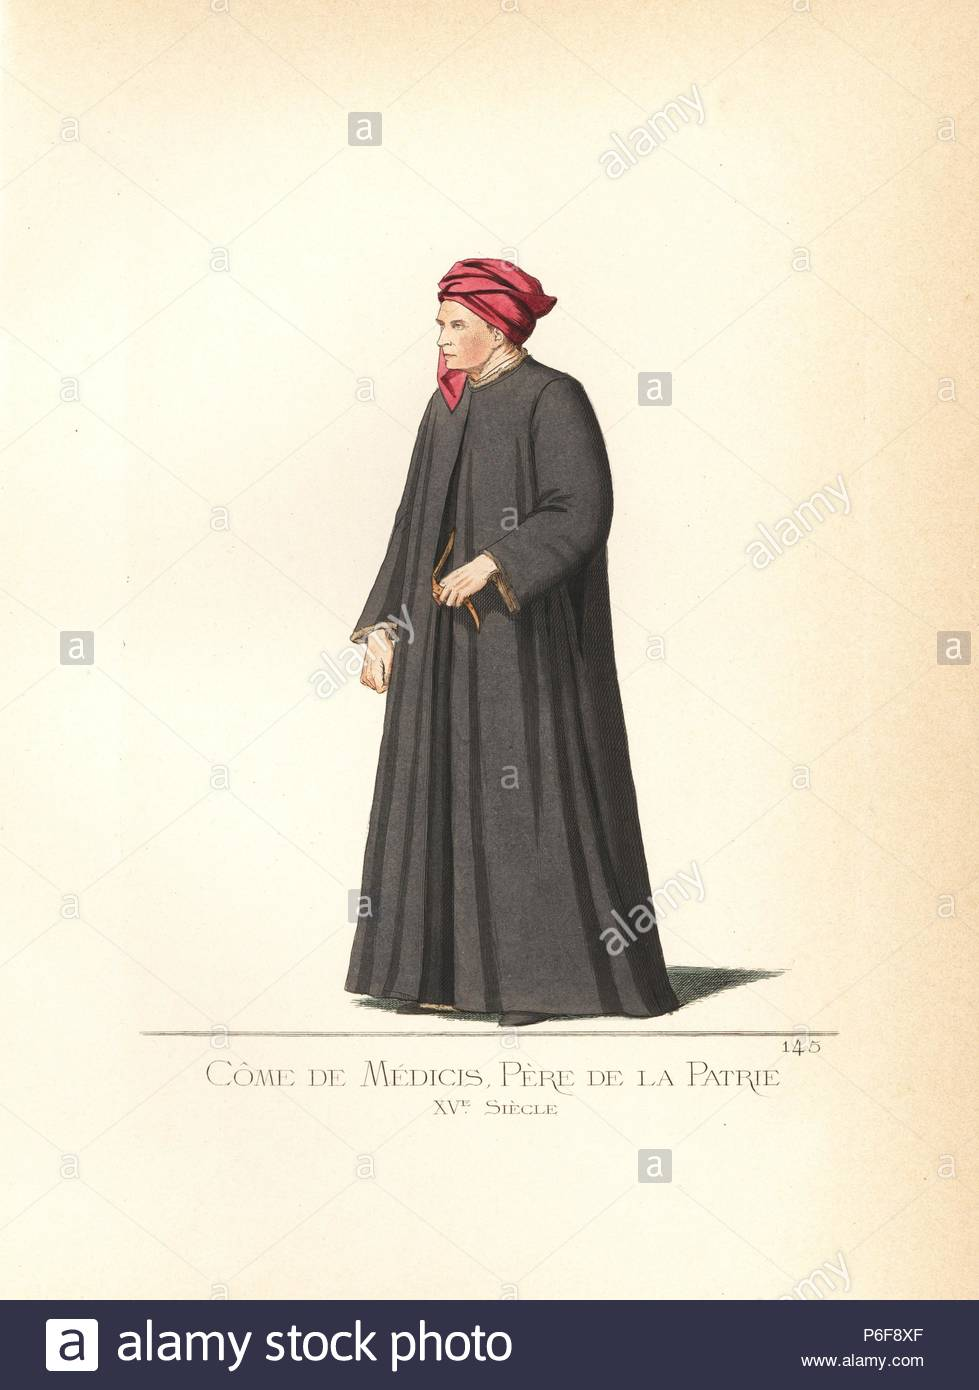 Costume of Cosimo de Medici (1389–1464), father of the nation. He wears a crimson bonnet, black cape over black robe. From a painting by Benozzo Gozzoli in the camposante (graveyard) in Pisa. Handcoloured illustration drawn and lithographed by Paul Mercuri with text by Camille Bonnard from 'Historical Costumes from the 12th to 15th Centuries,' Levy Fils, Paris, 1861. - Stock Image